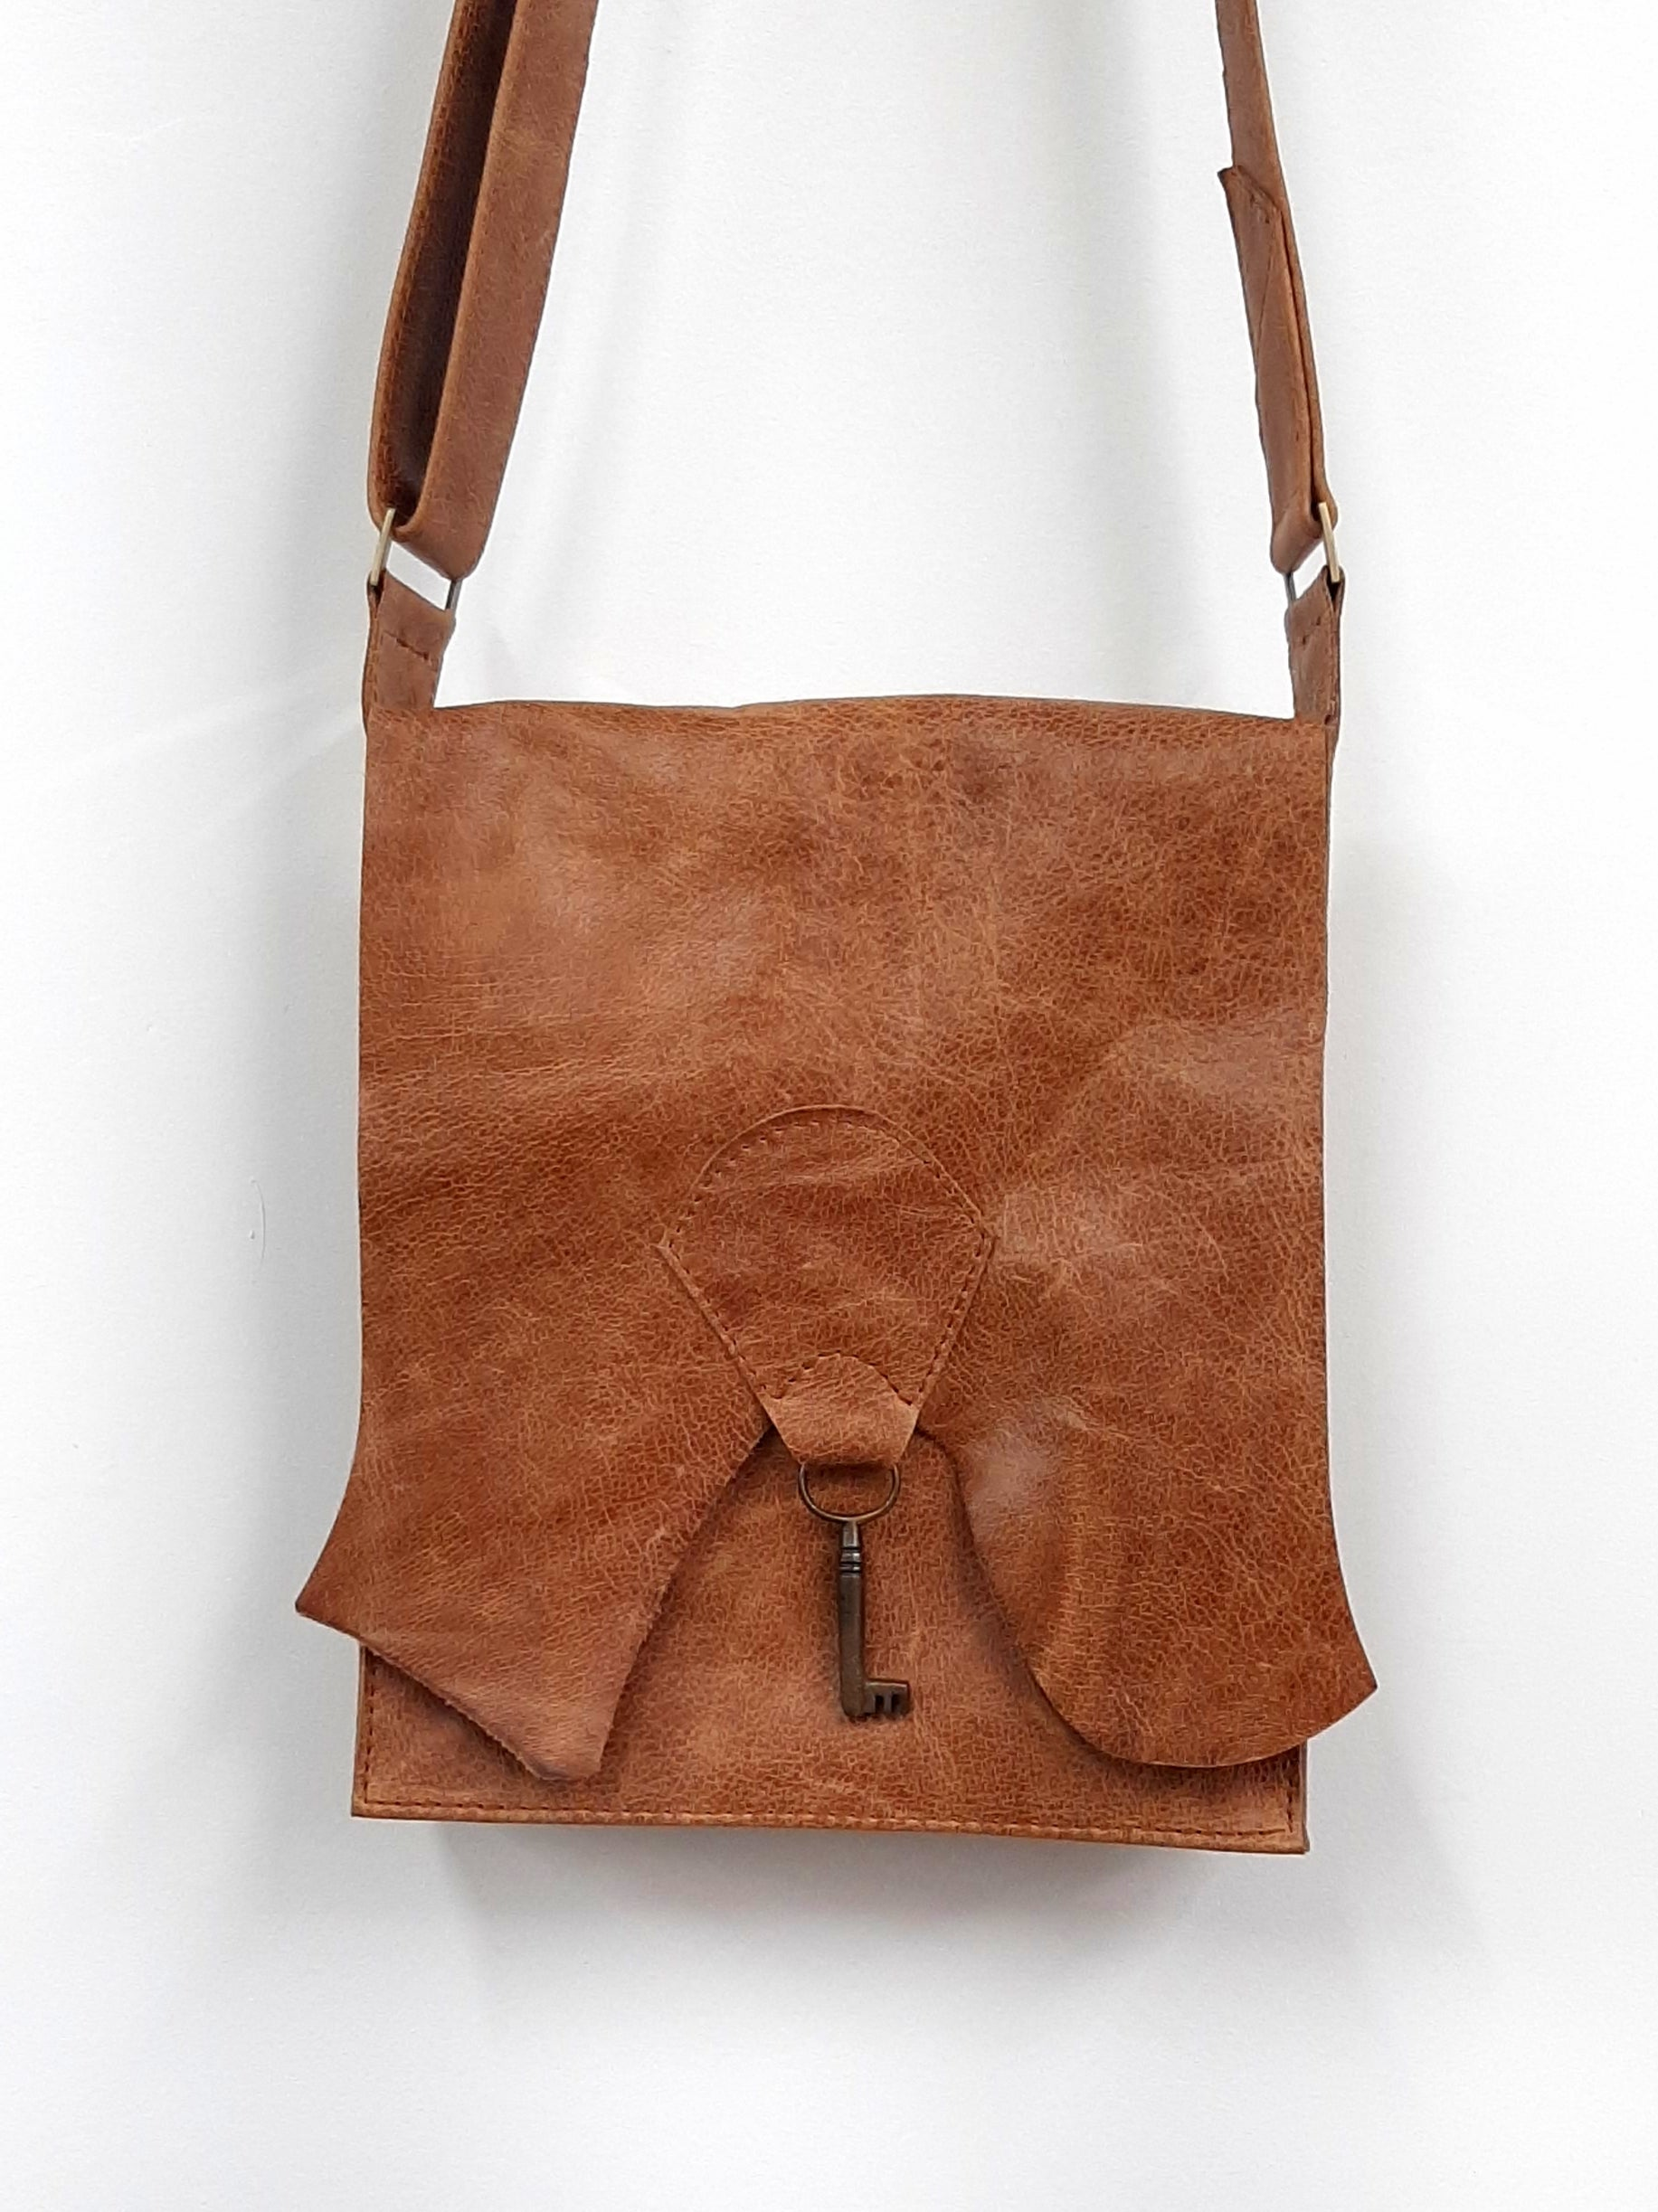 Raw Edge Leather Bag with Vintage Key Detail - Tan